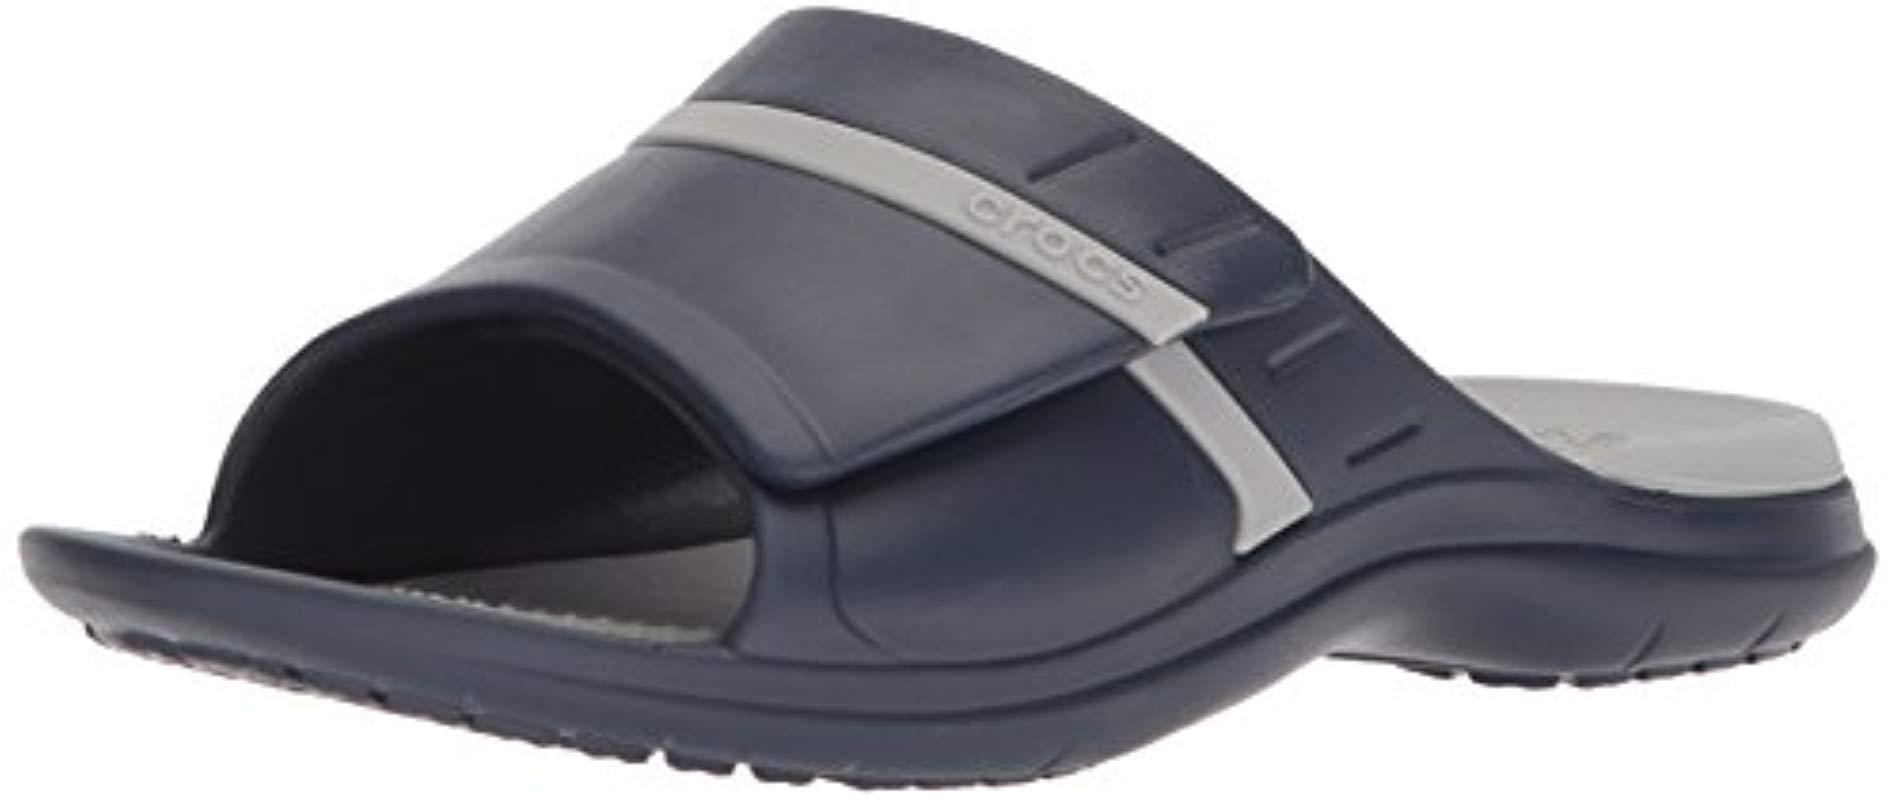 b6a0024b95d4 Lyst - Crocs™ Unisex Modi Sport Slide Sandals in Gray